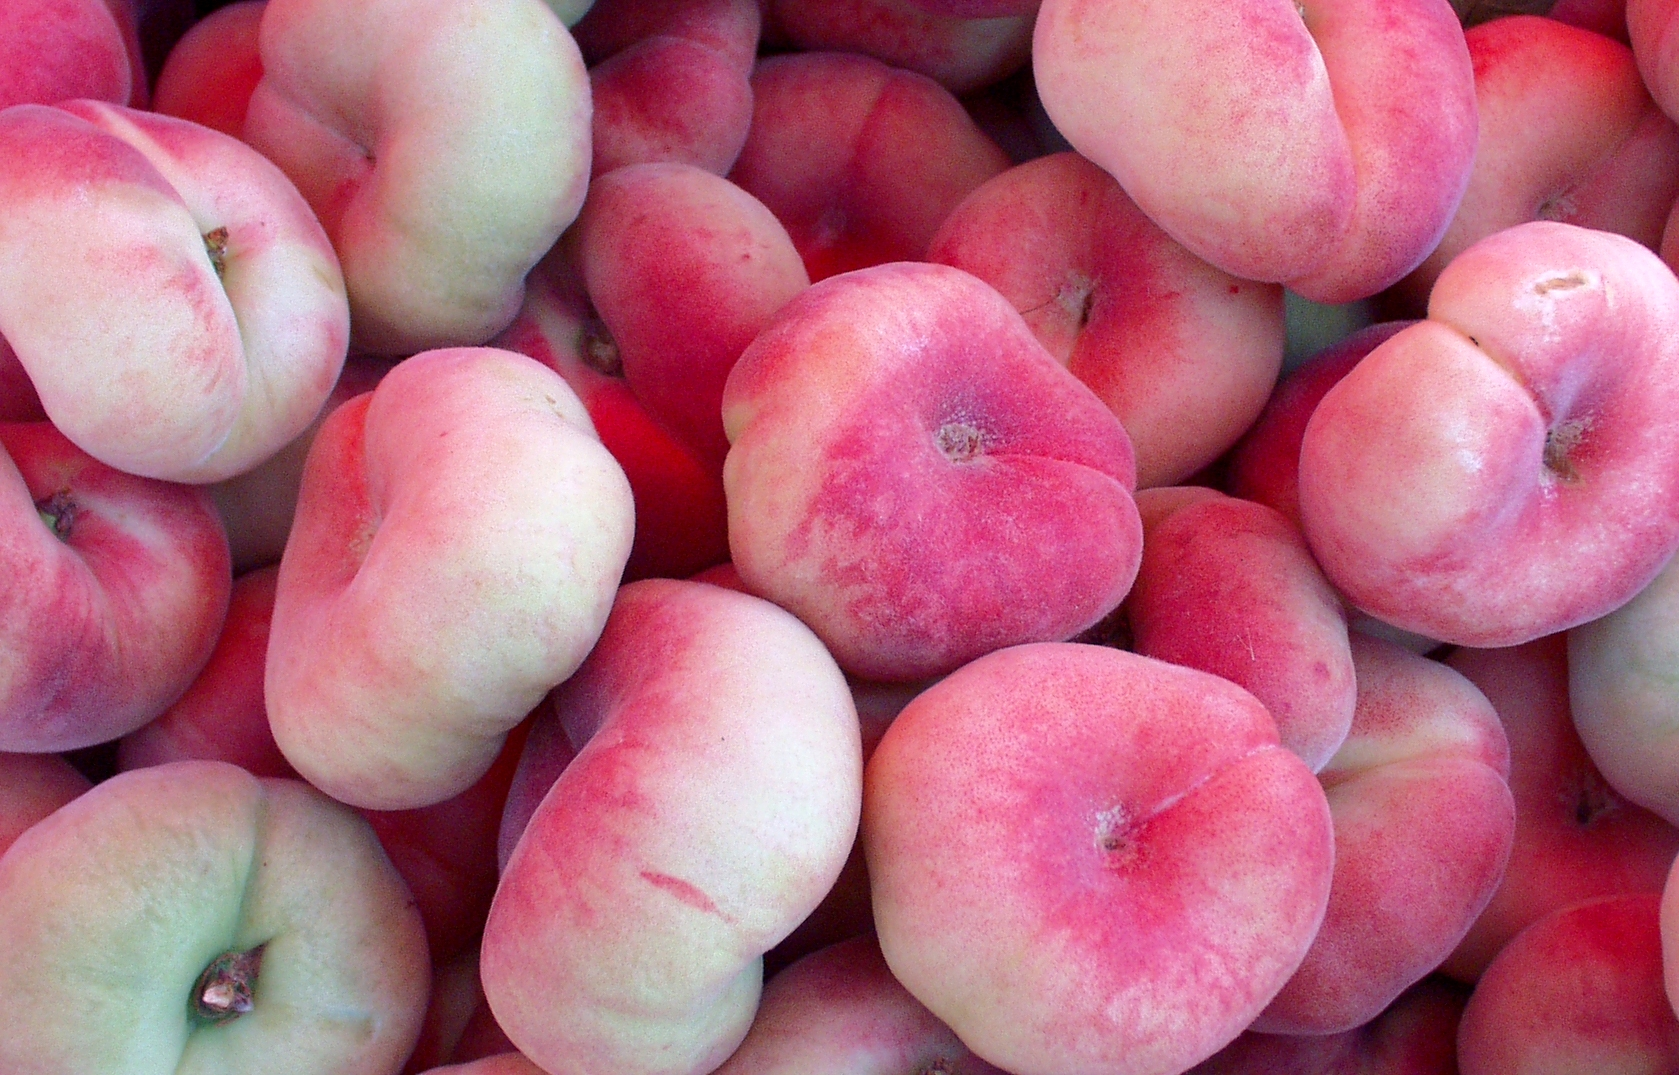 Donut peaches from Tiny's Organic Produce. Photo copyright 2009 by Zachary D. Lyons.